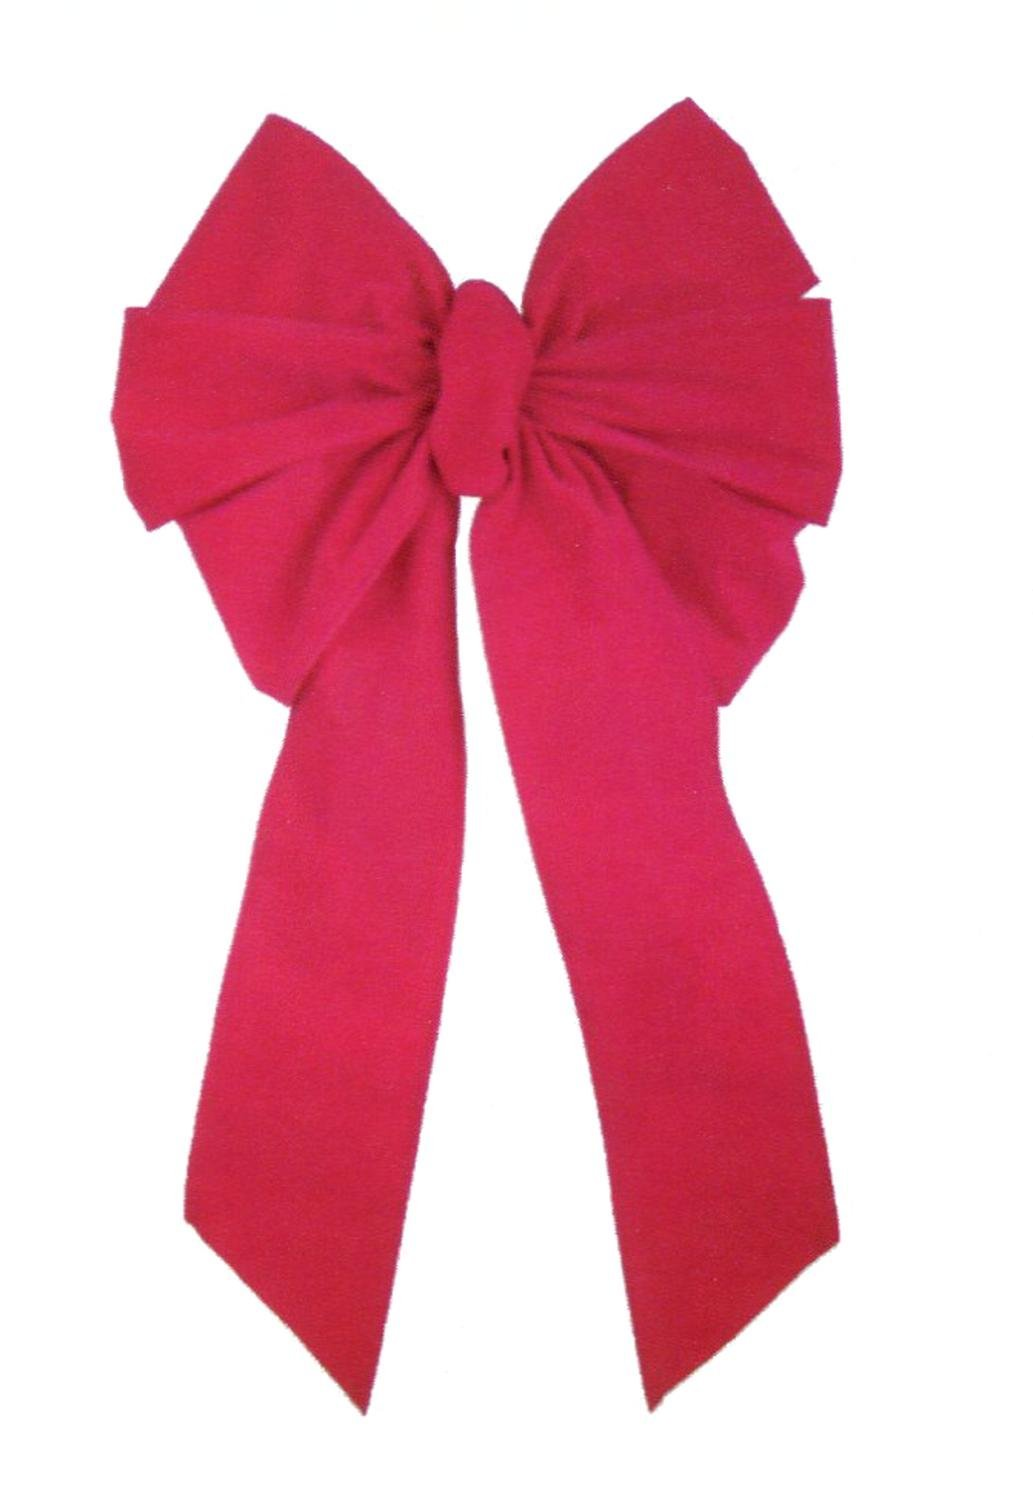 22'' x 39'' Large Commercial Red Velveteen 10 Loop Wired Holiday Christmas Bow